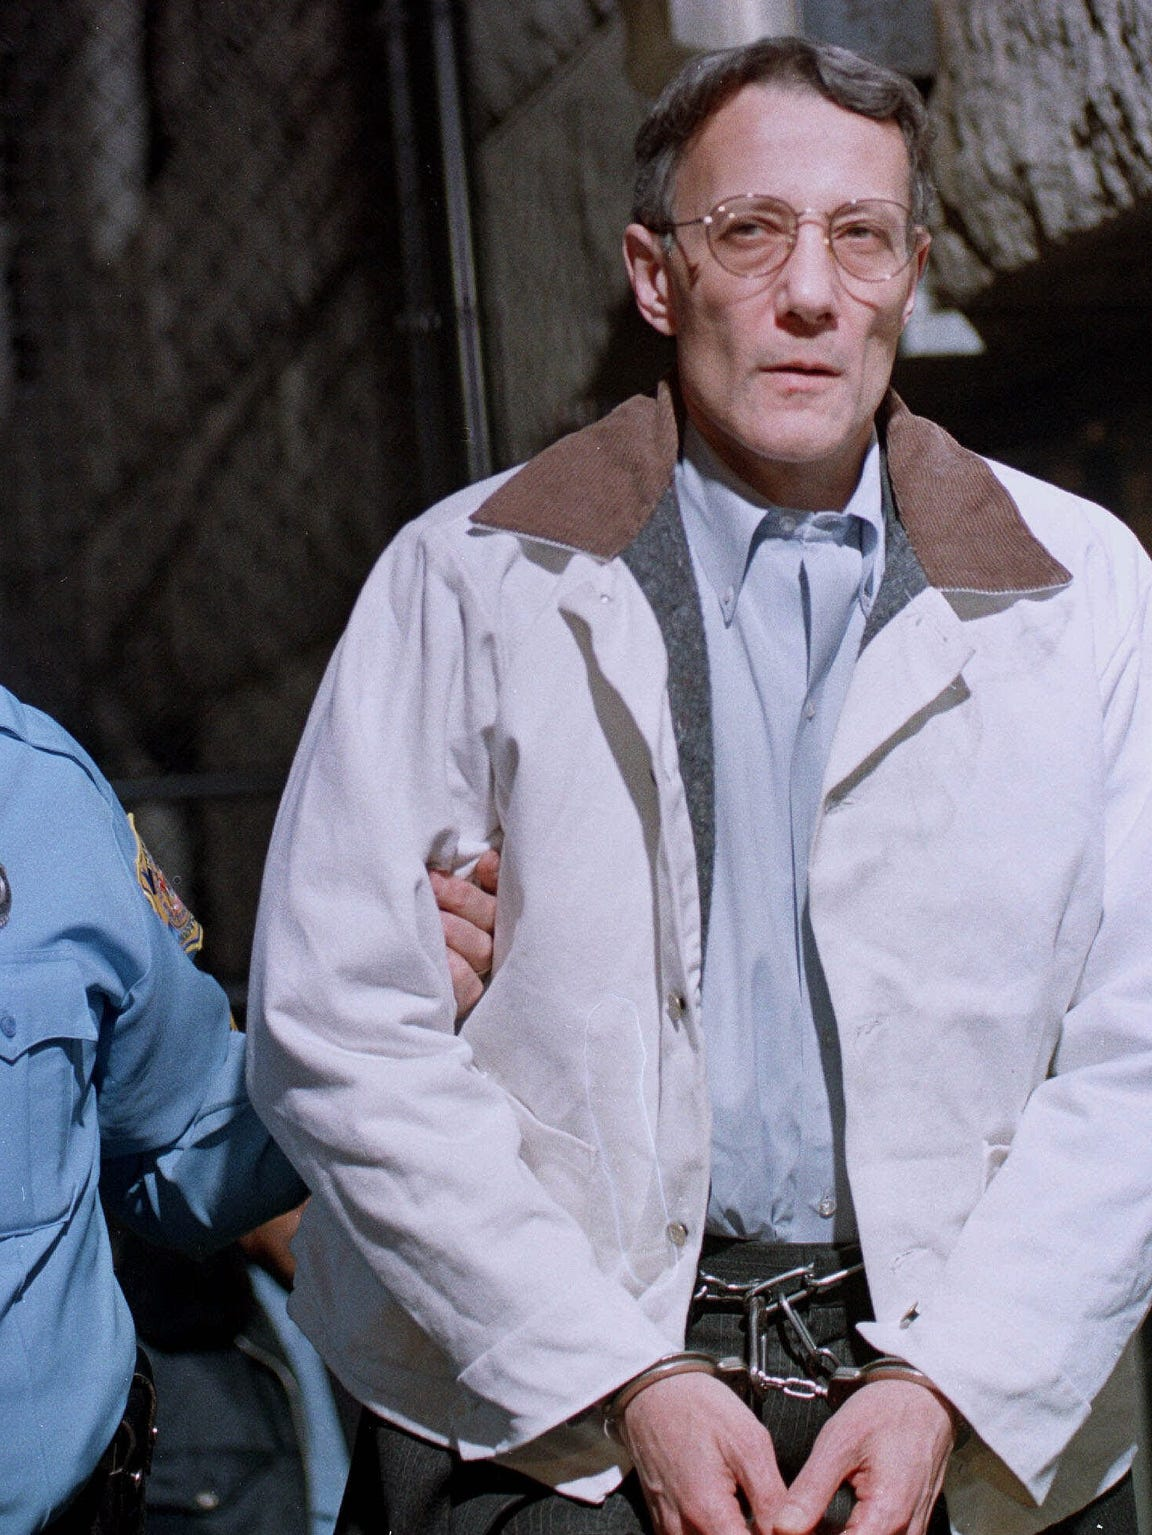 Thomas Capano, right, is escorted from a courthouse